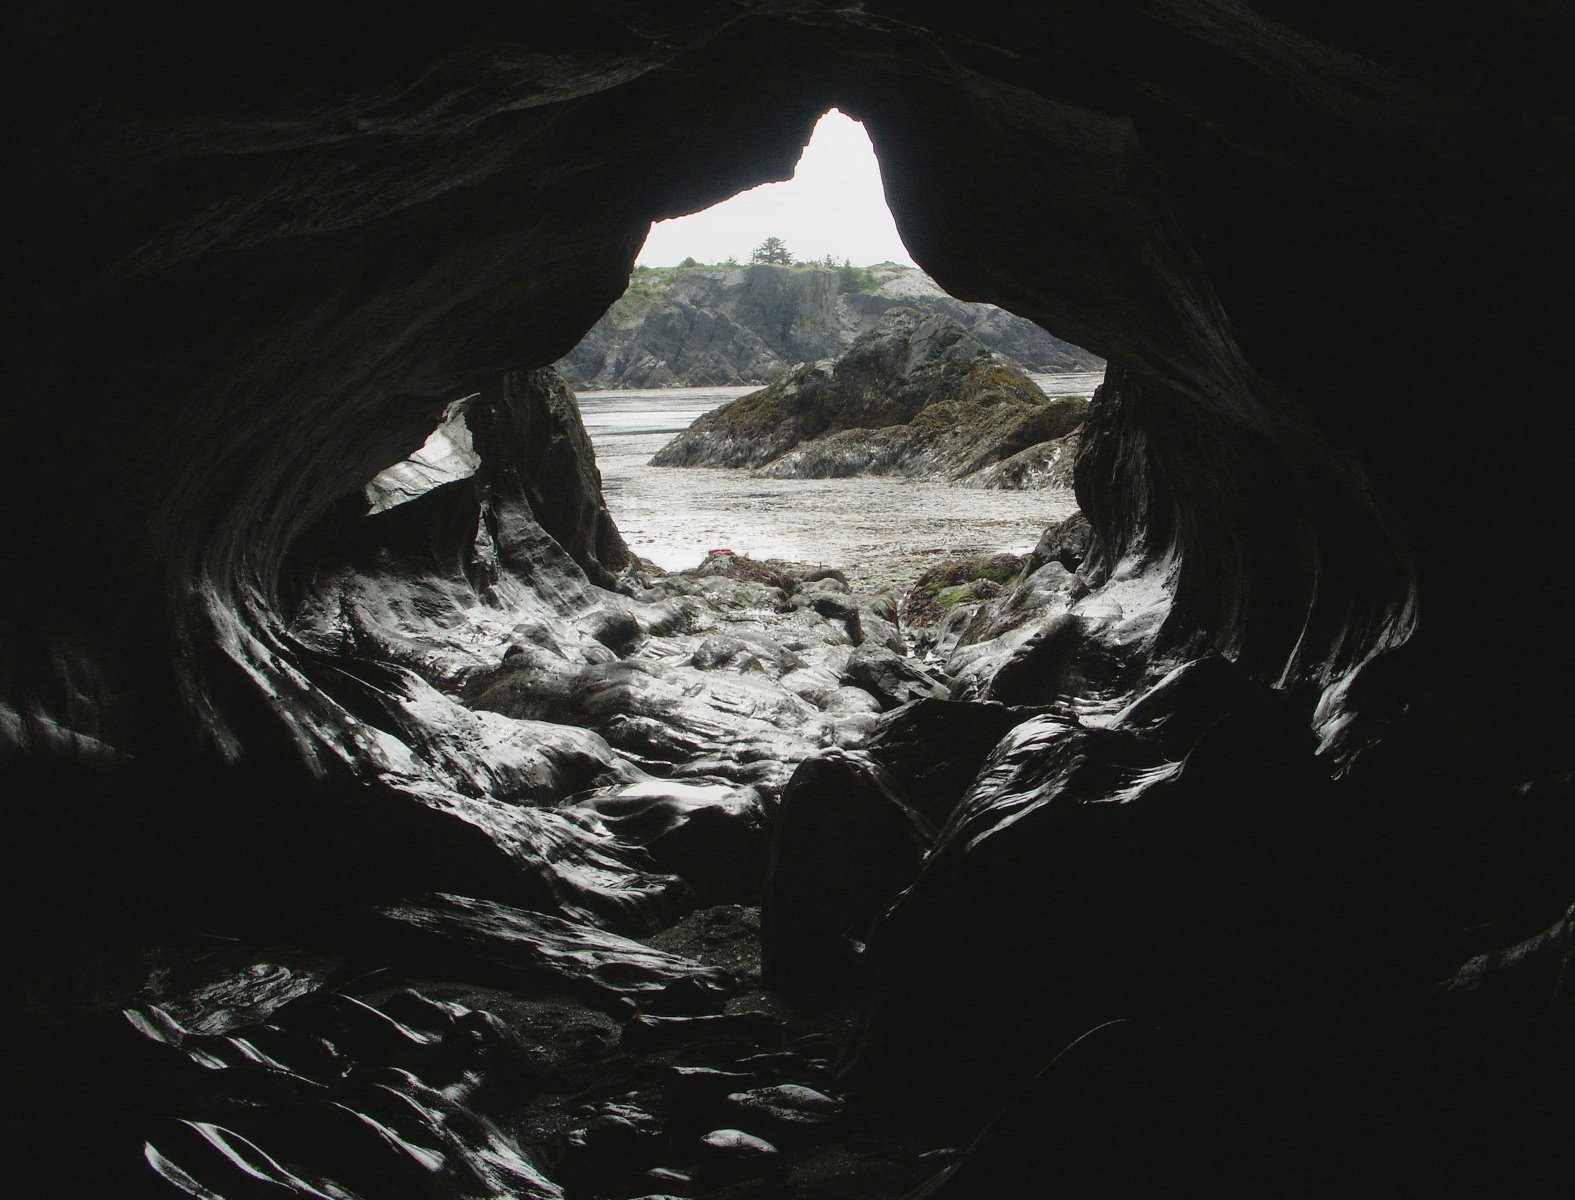 Sea cave and sea arch rock formations.